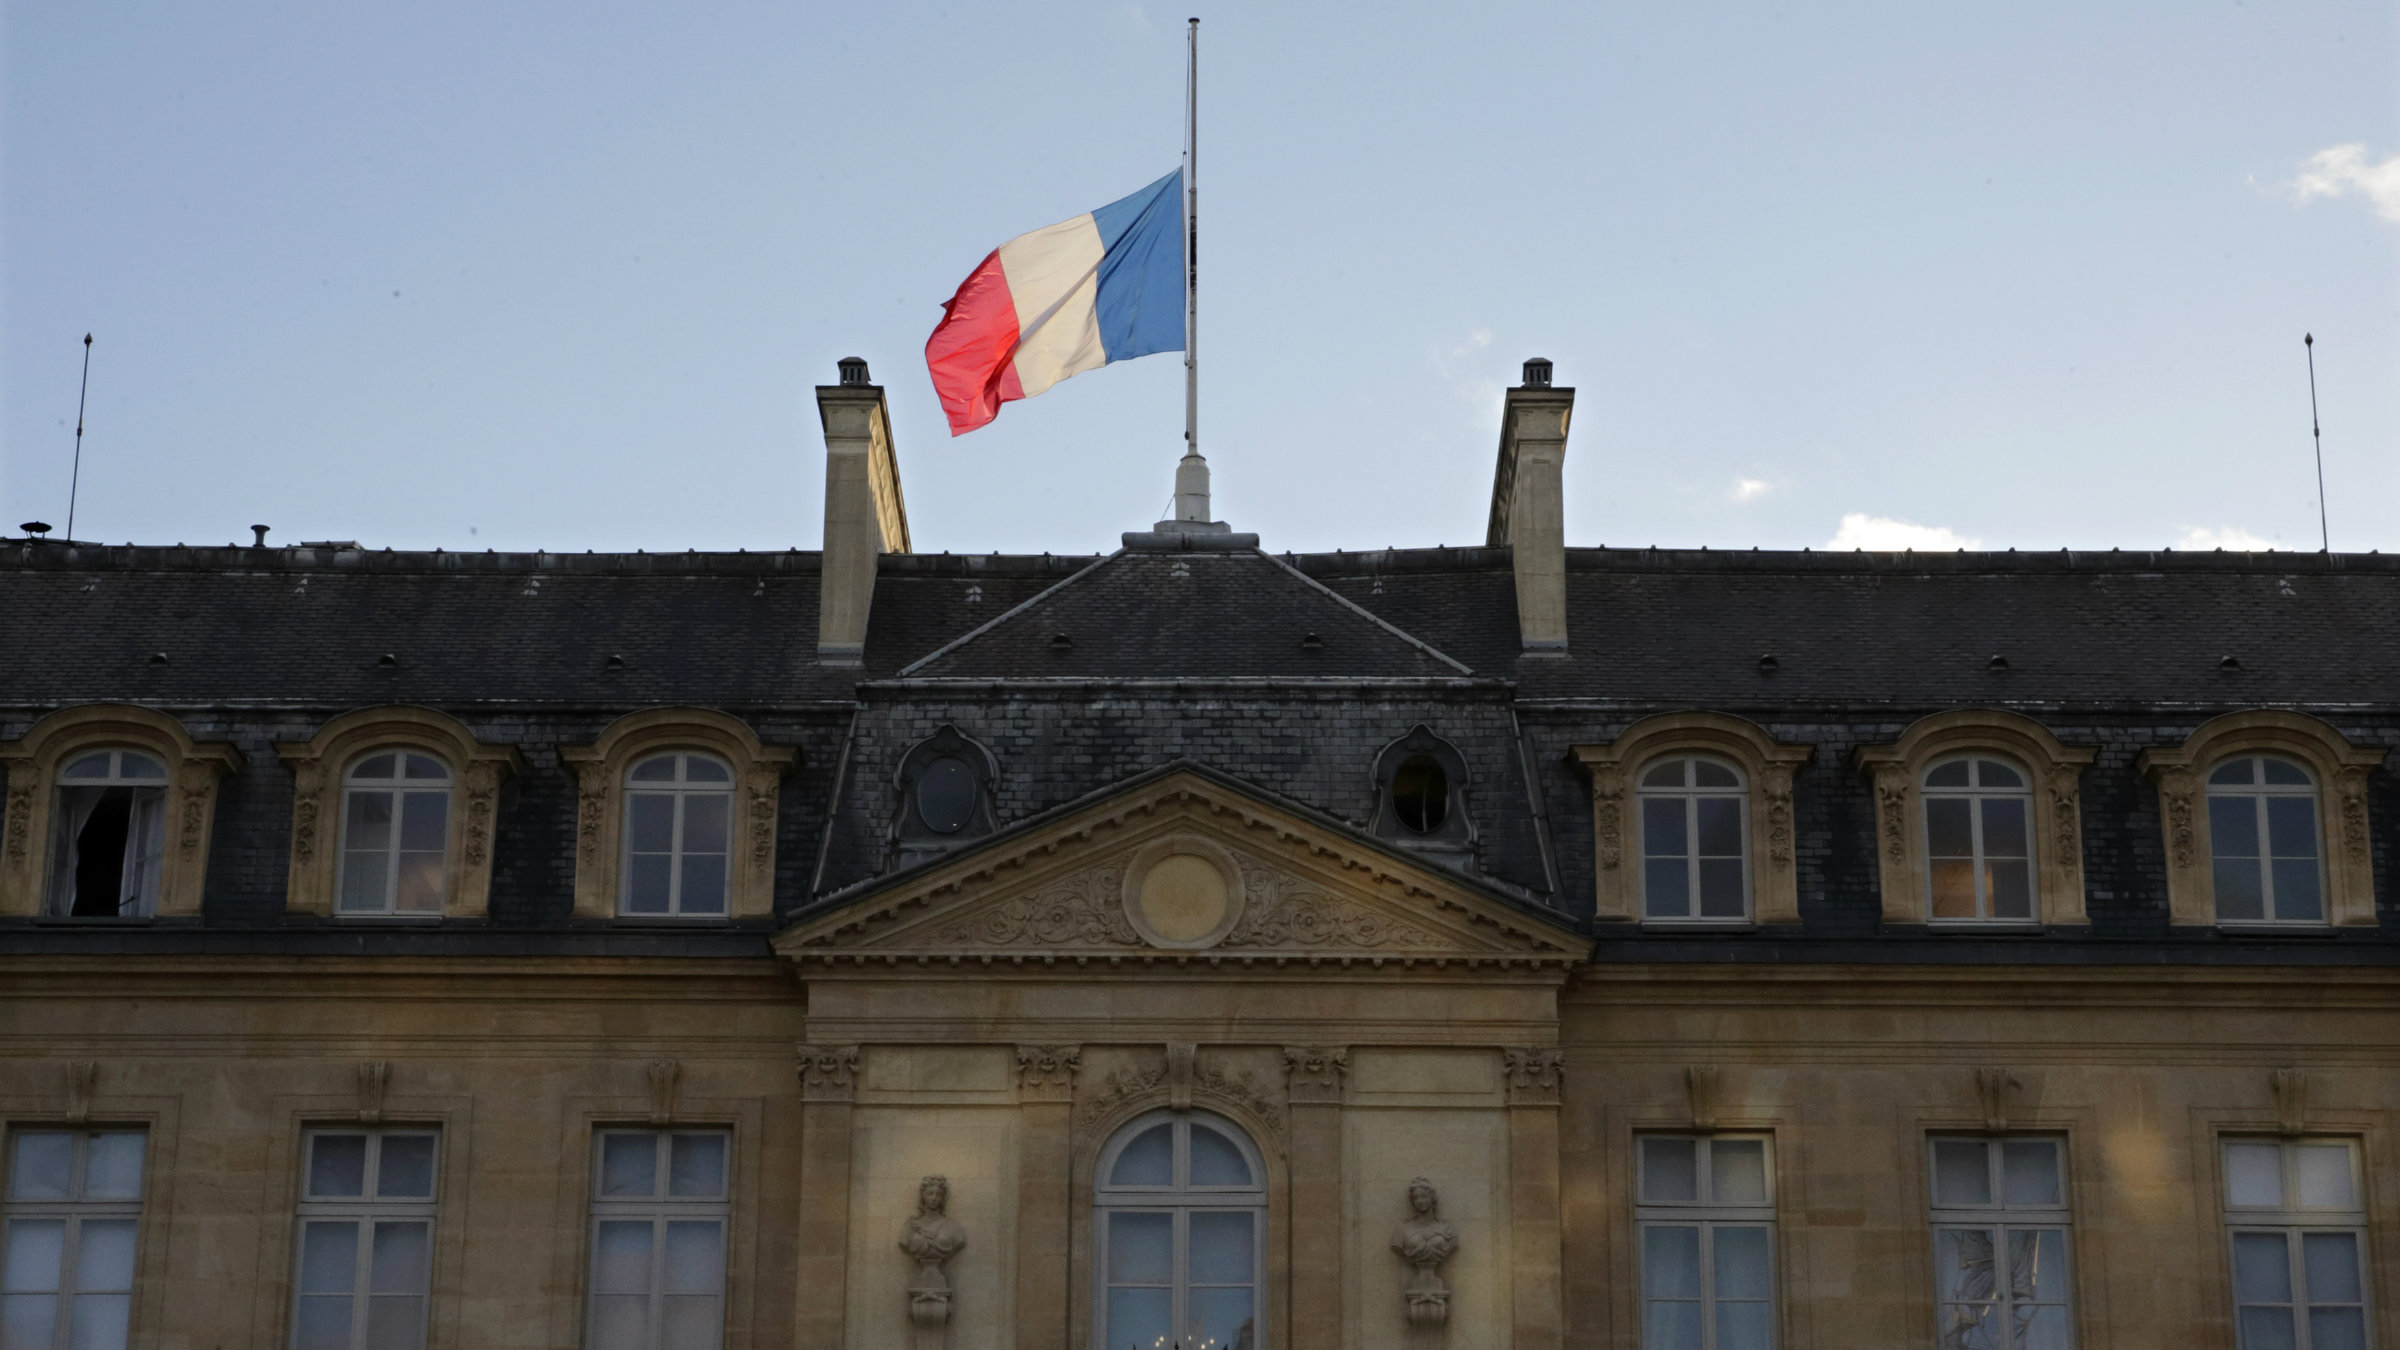 The French flag flies at half-mast above the Elysee Palace in a sign of mourning in Paris January 8, 2015 the day after a shooting at the Paris offices of weekly satirical newspaper Charlie Hebdo.